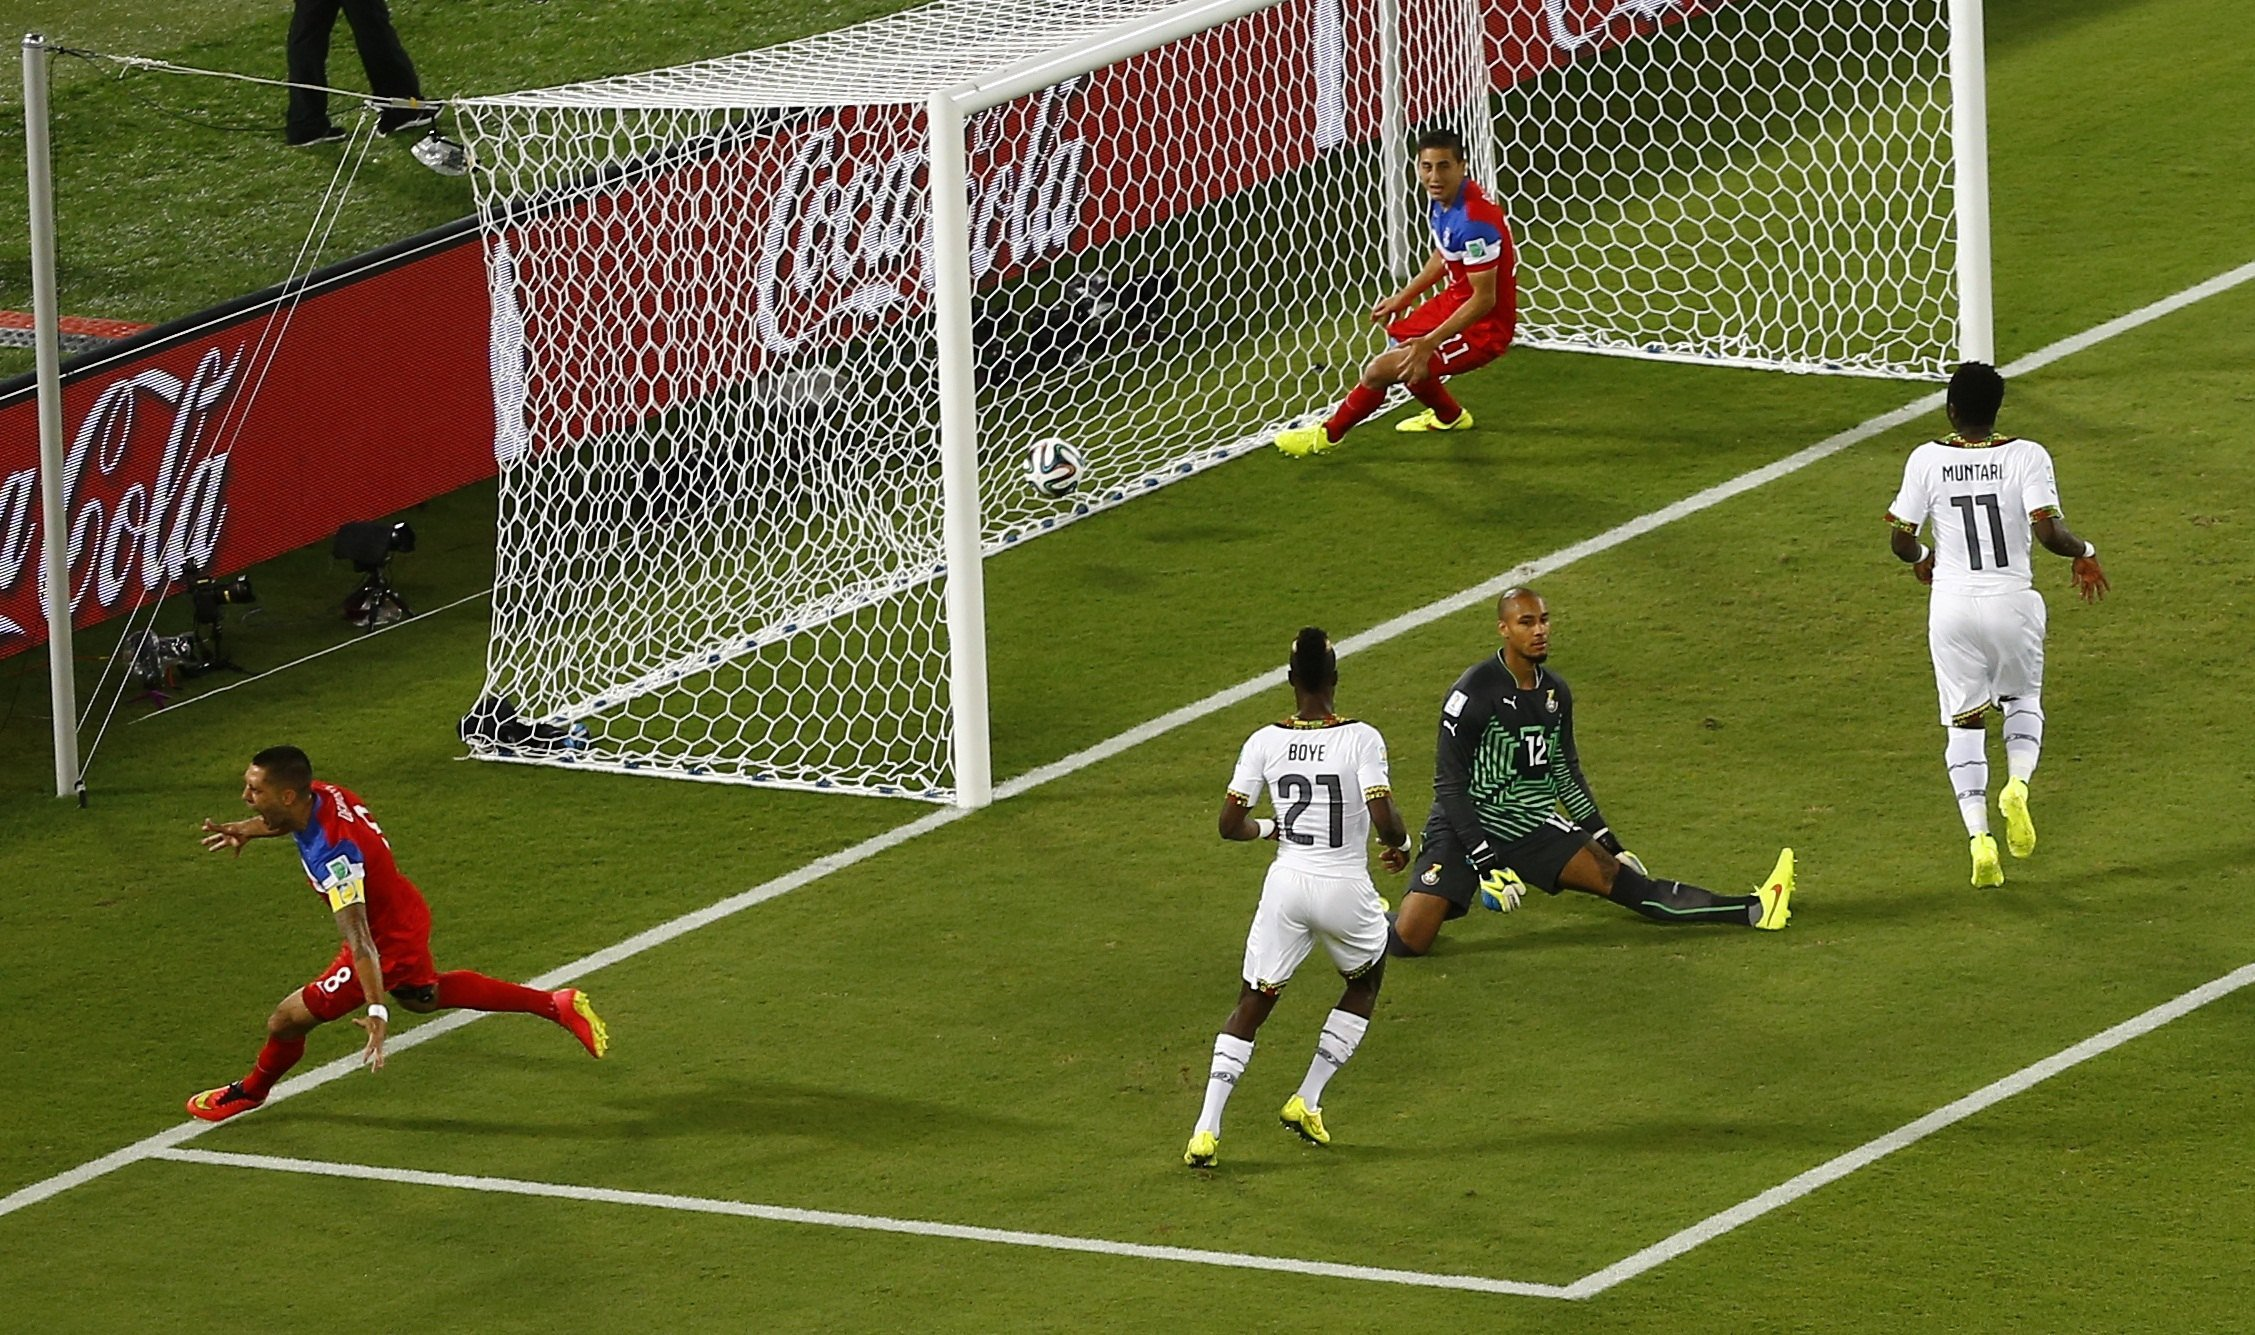 Clint Dempsey of the U.S. celebrates after scoring a goal against Ghana during their 2014 World Cup Group G soccer match at the Dunas arena in Natal, Brazil on June 16, 2014.